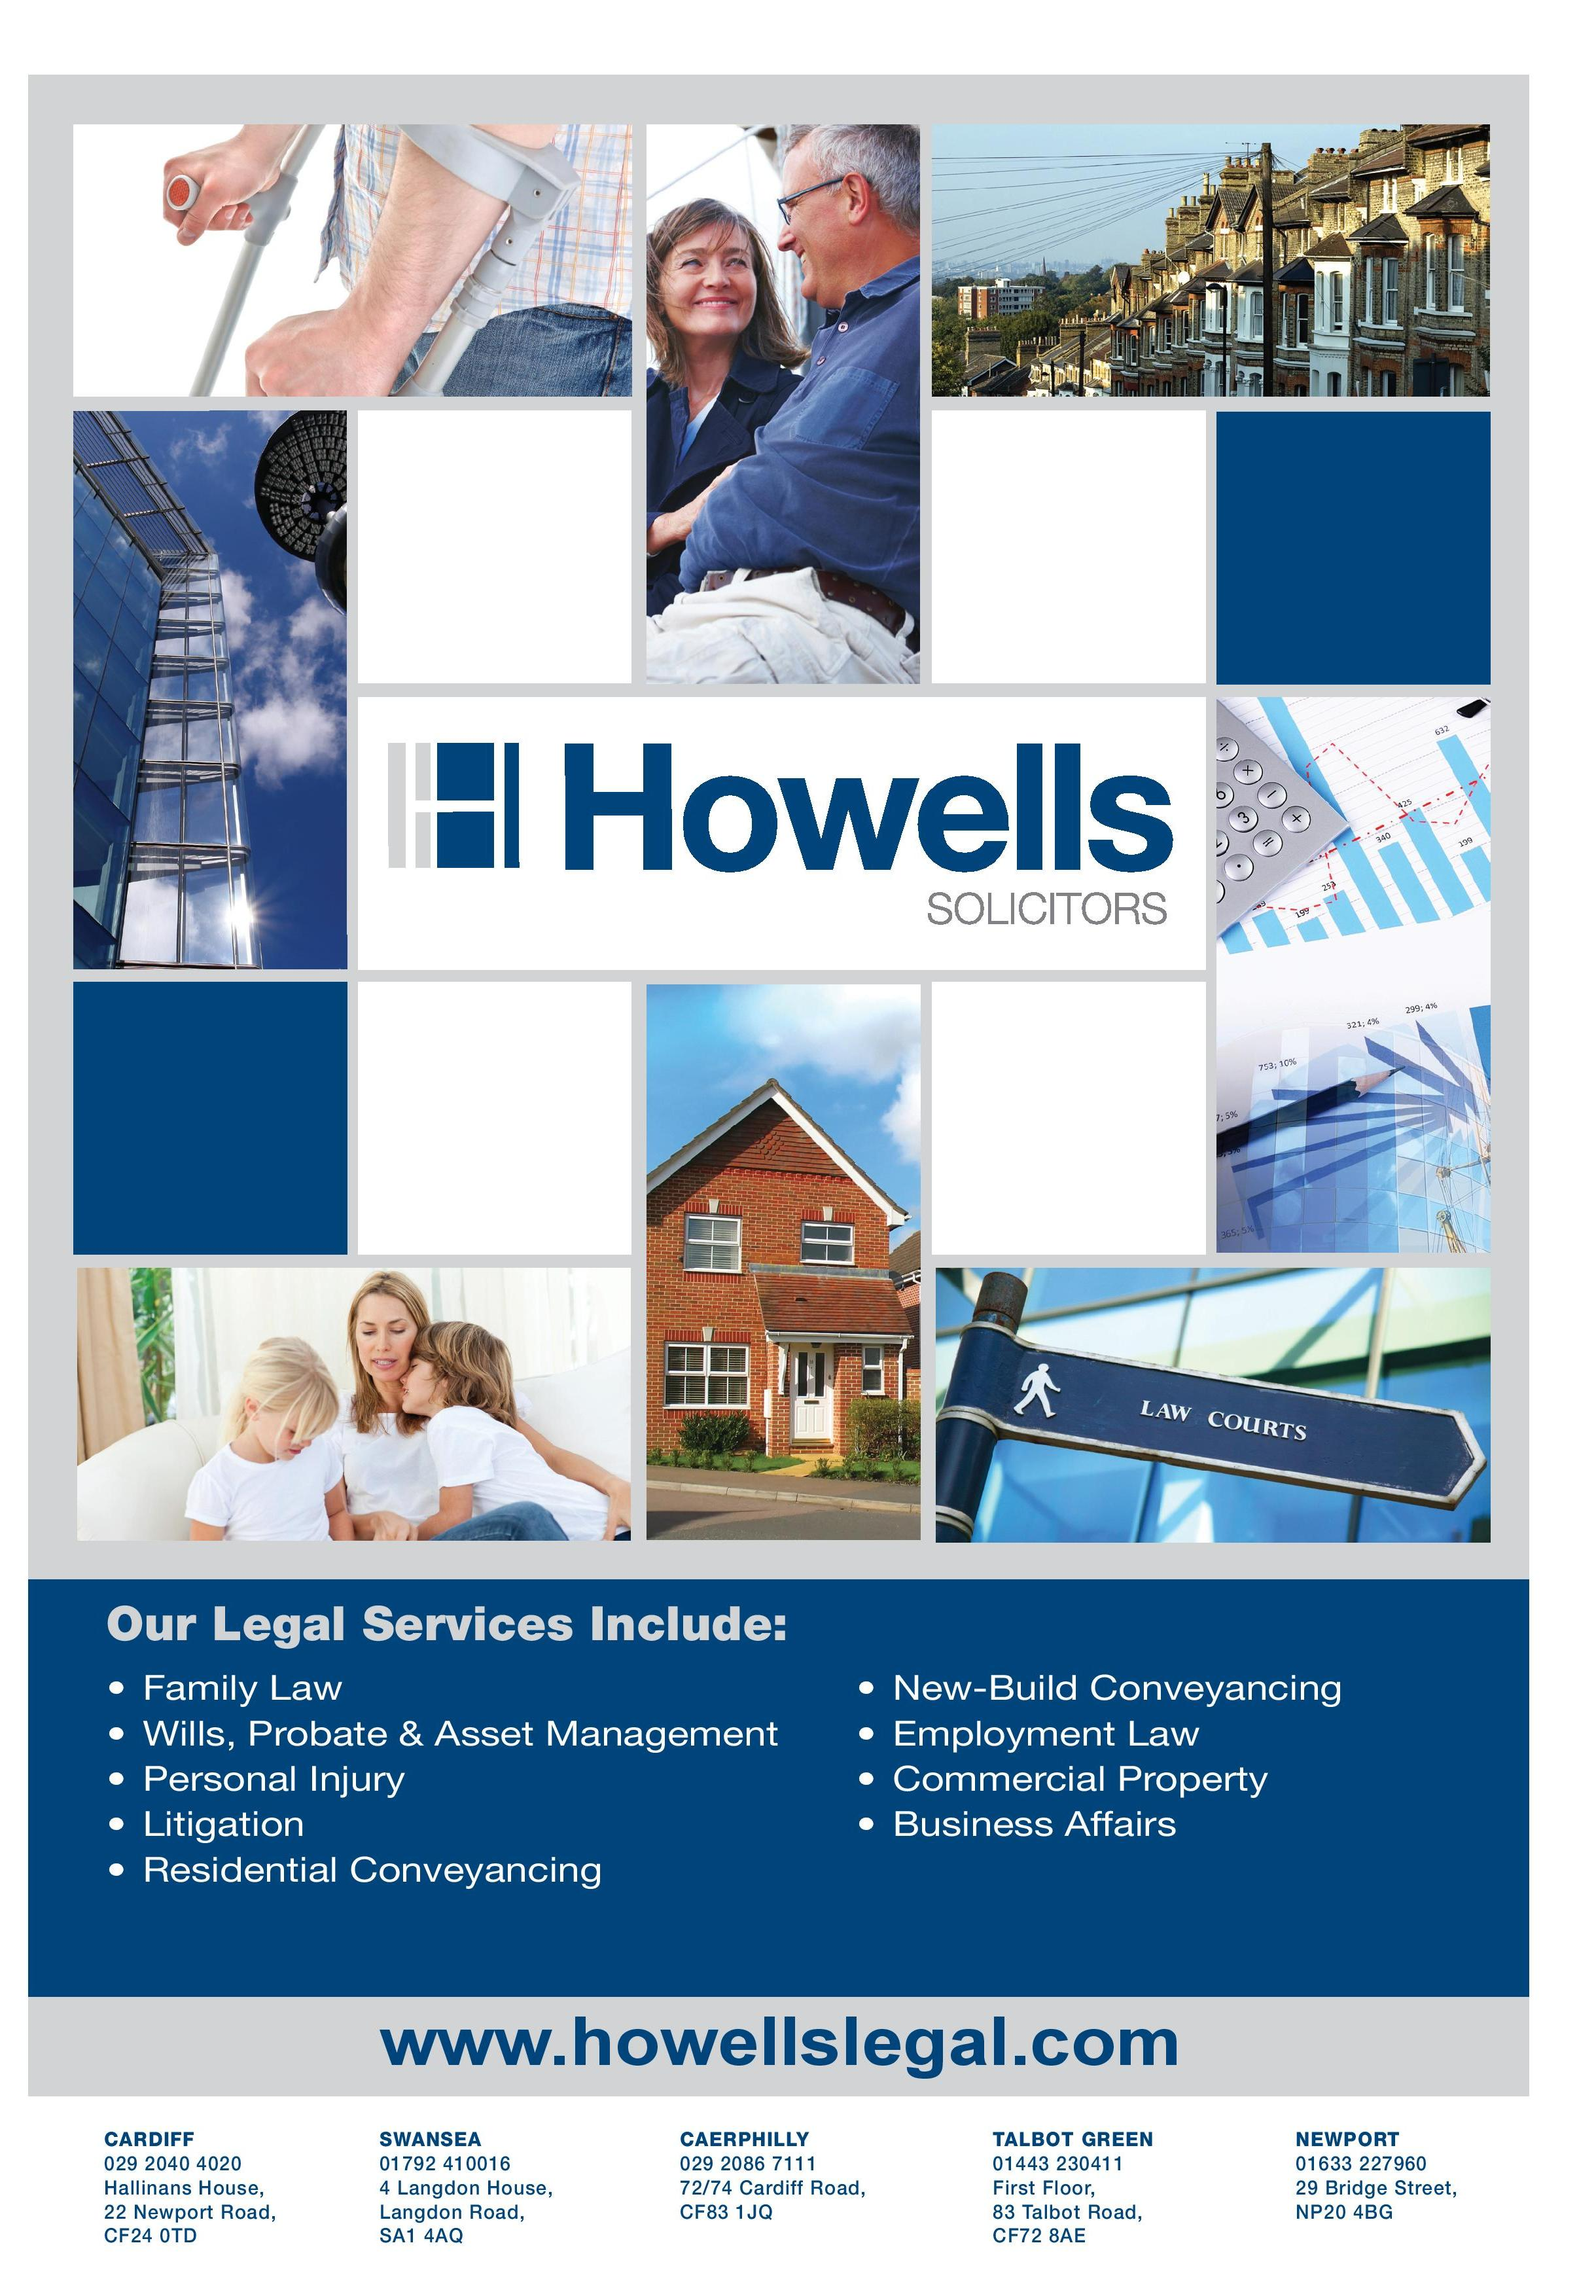 legal 500 recognition for howells solicitors